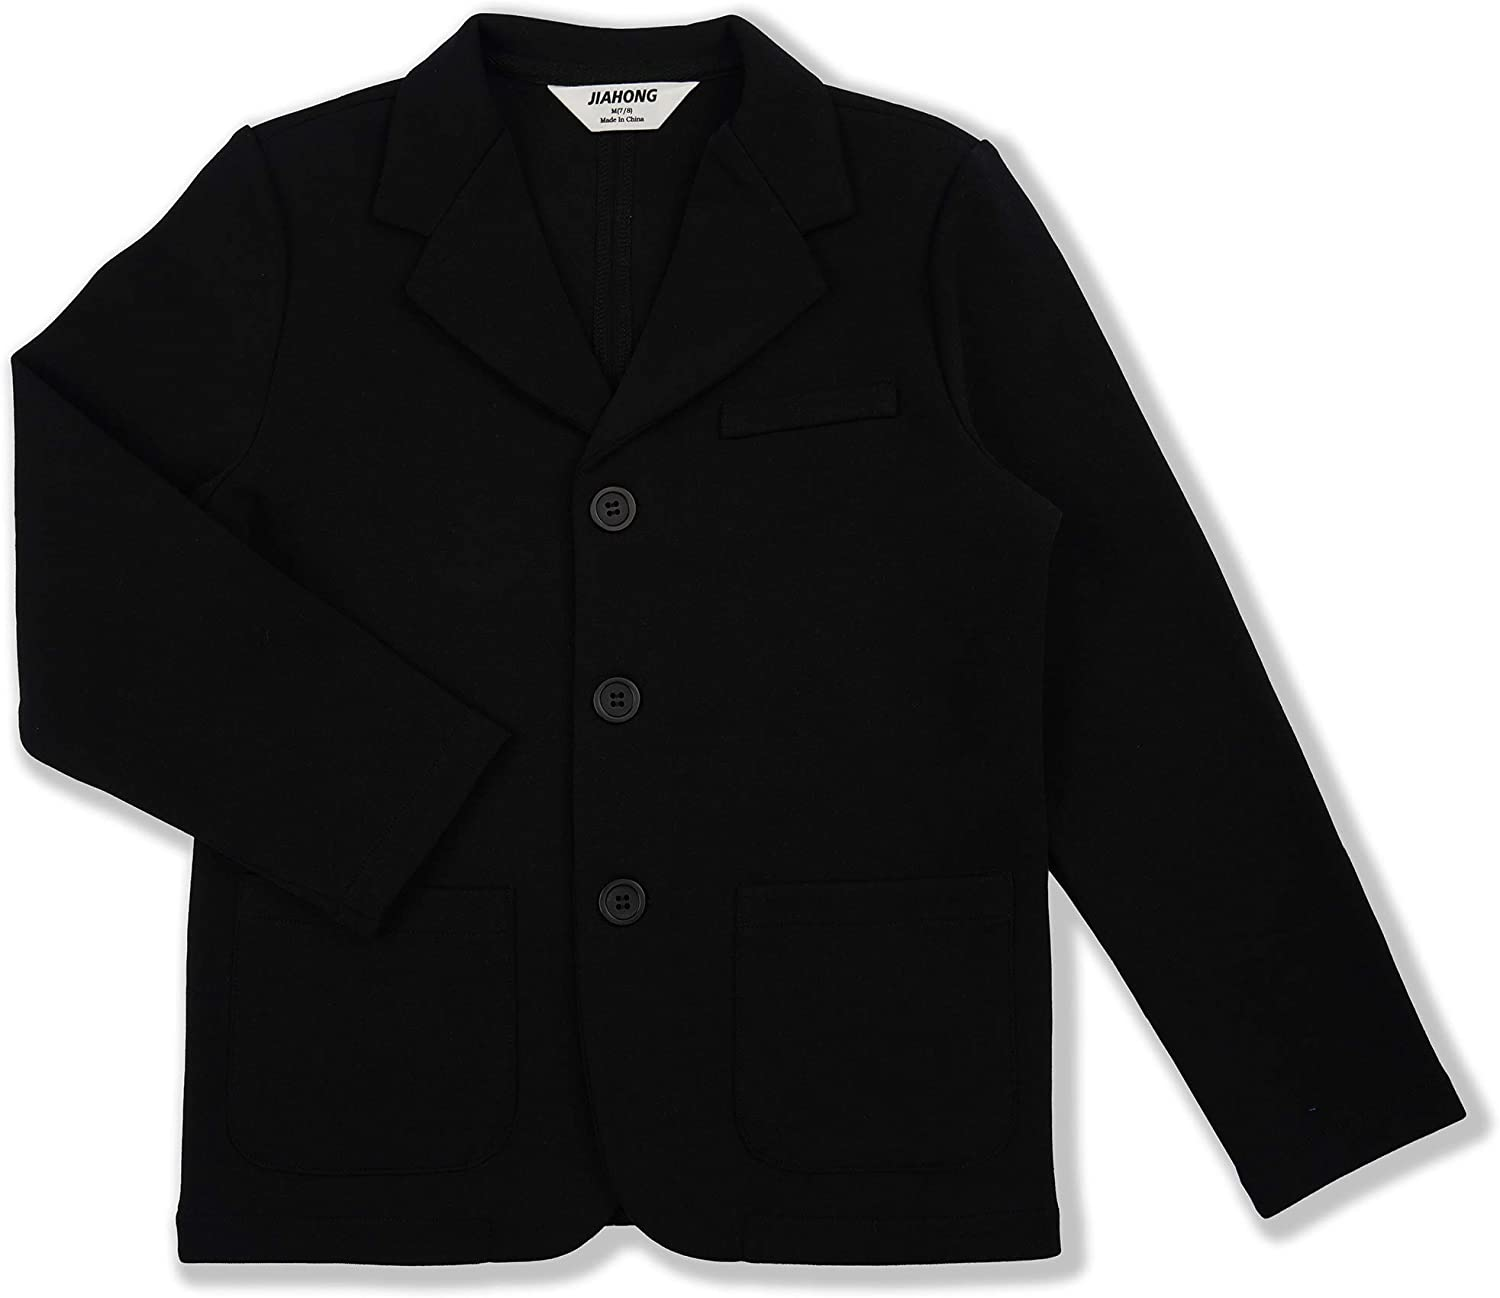 JIAHONG Kids Boys' Sport Blazer Casual Blazers Suit Jacket with Pockets for Girls or Toddler 3-12 Years